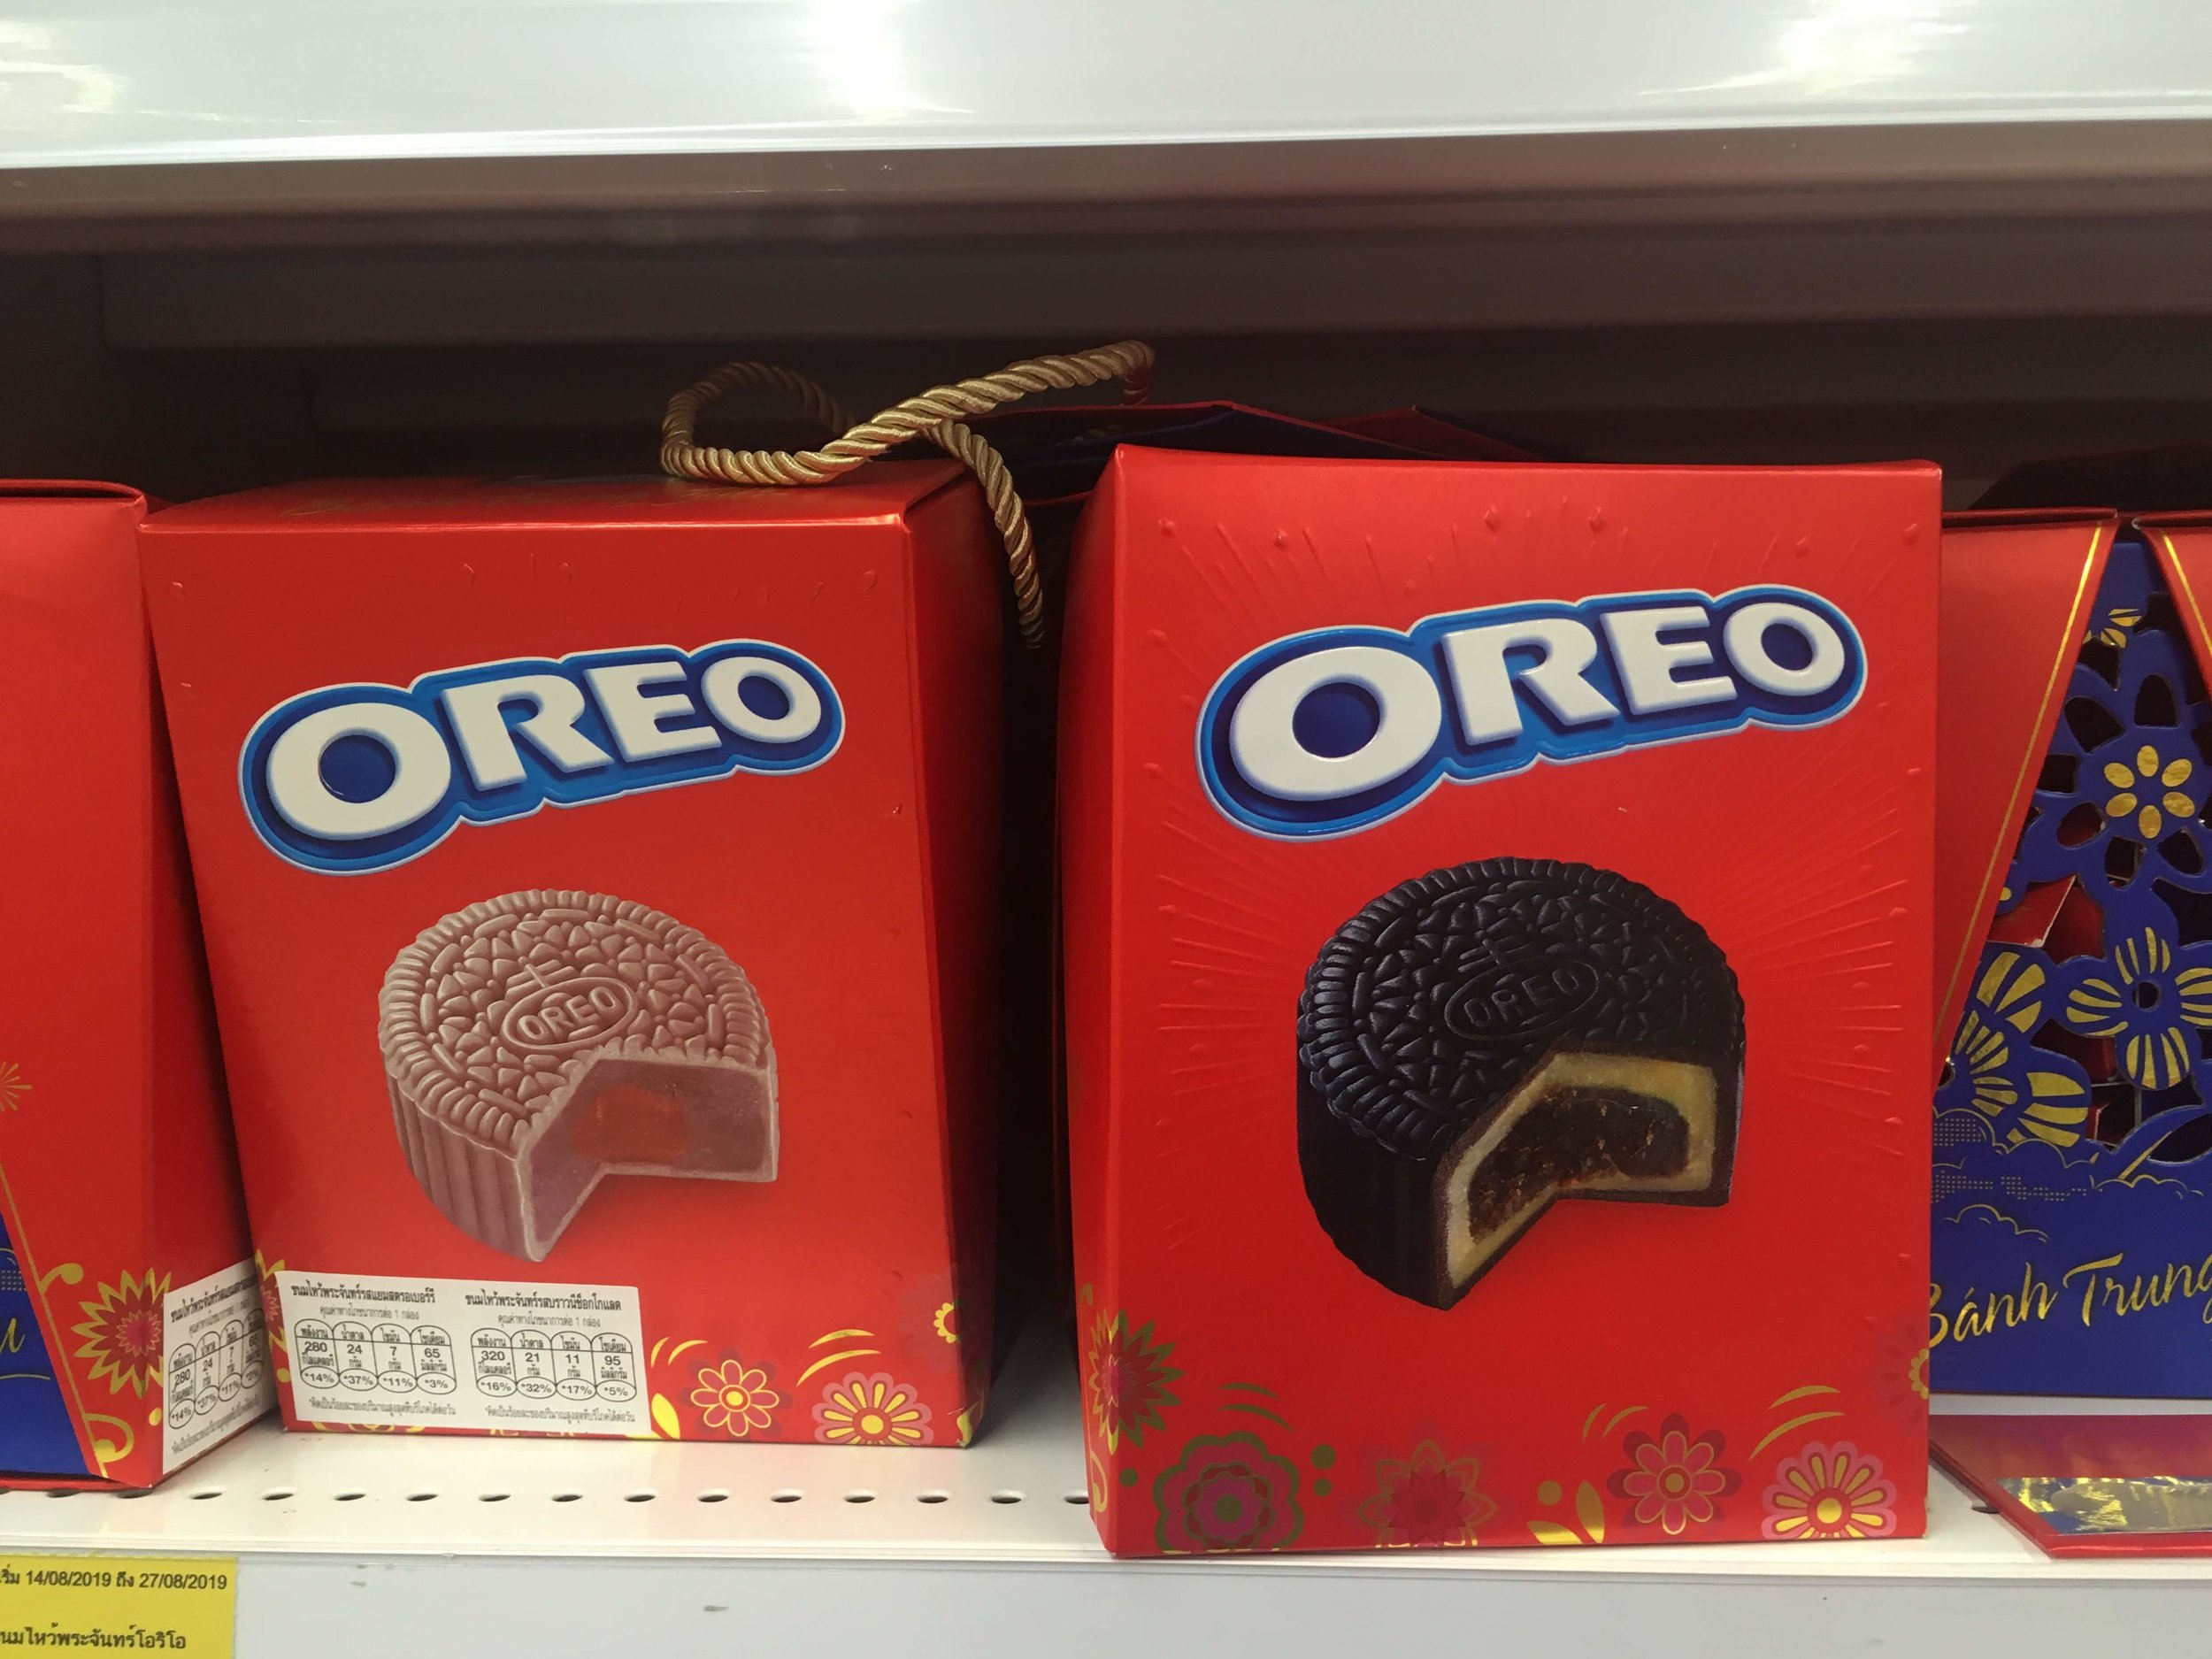 Oreo Mooncakes are available in Thailand and other countries in Asia